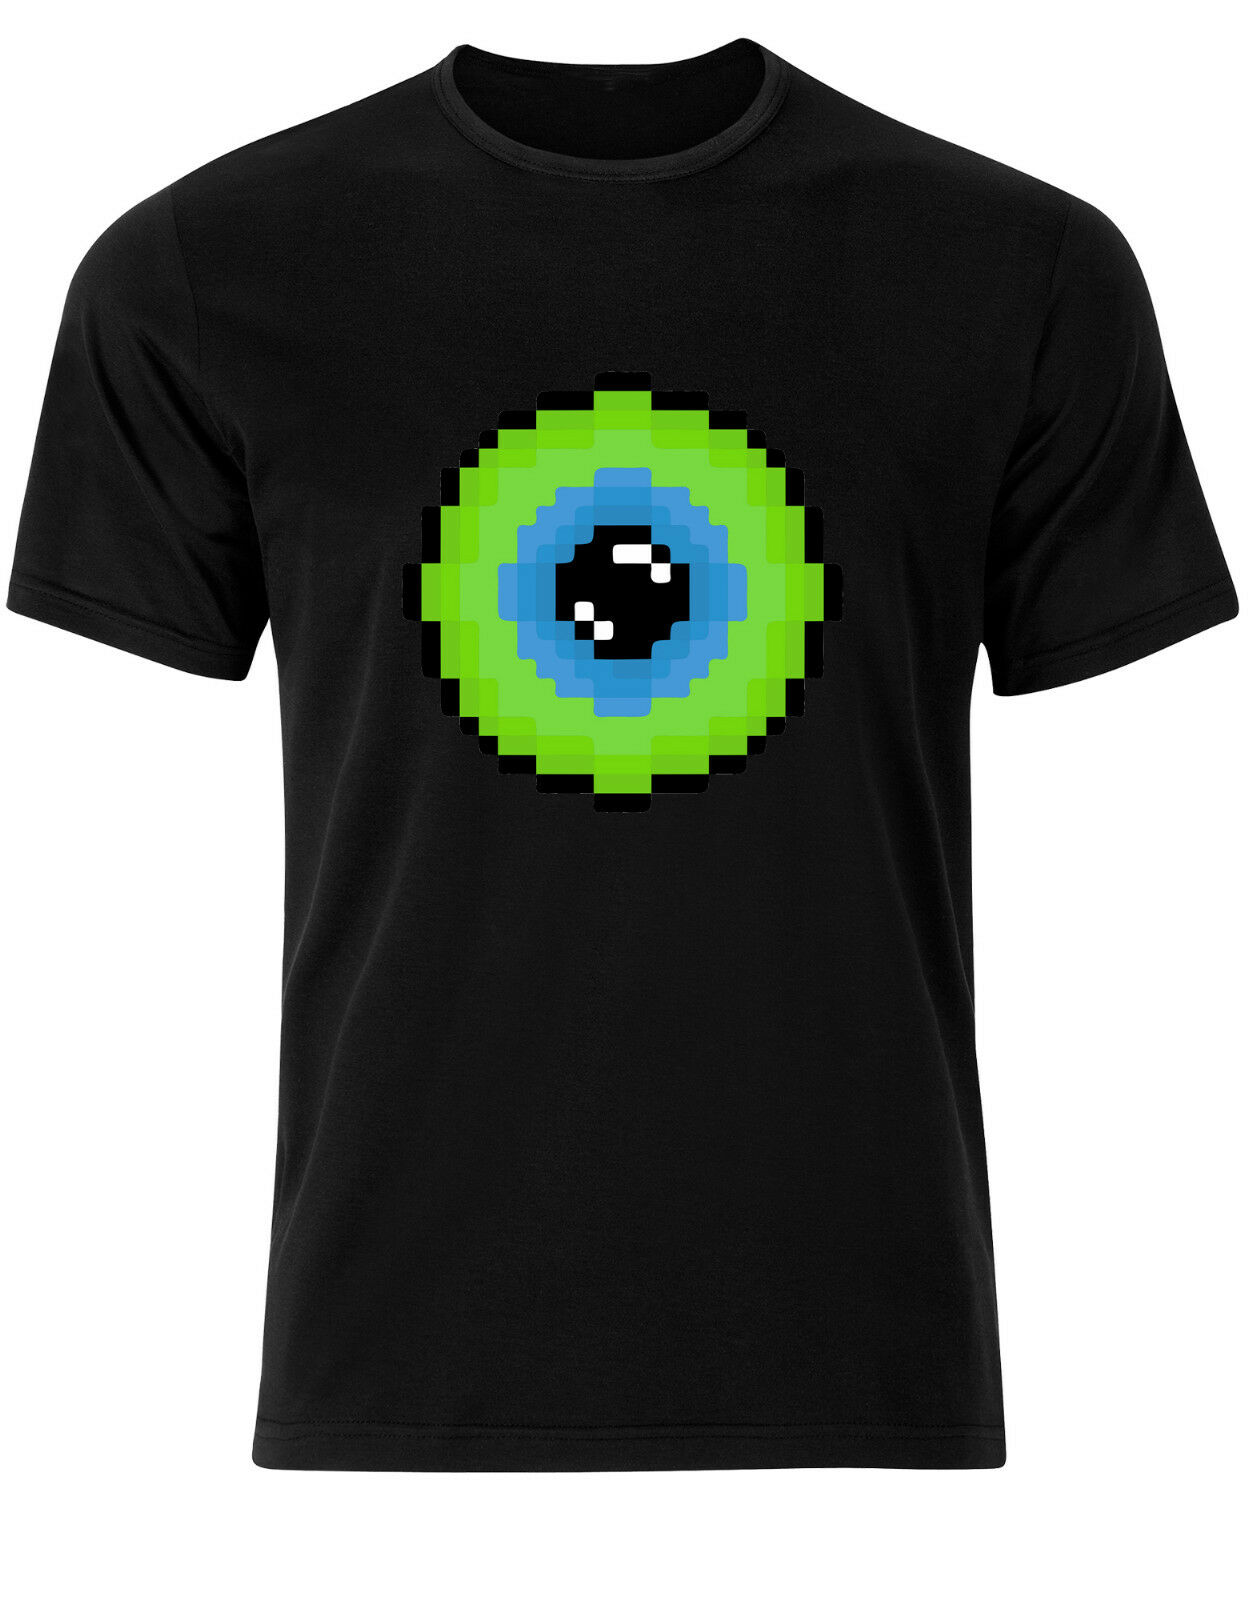 Jacksepticeye Blogger <font><b>Youtube</b></font> Jack Septic Eye <font><b>Tshirt</b></font> Mens Tee Shirt Top AH162019 fashionable Brand 271%cotton Printed Round Neck image